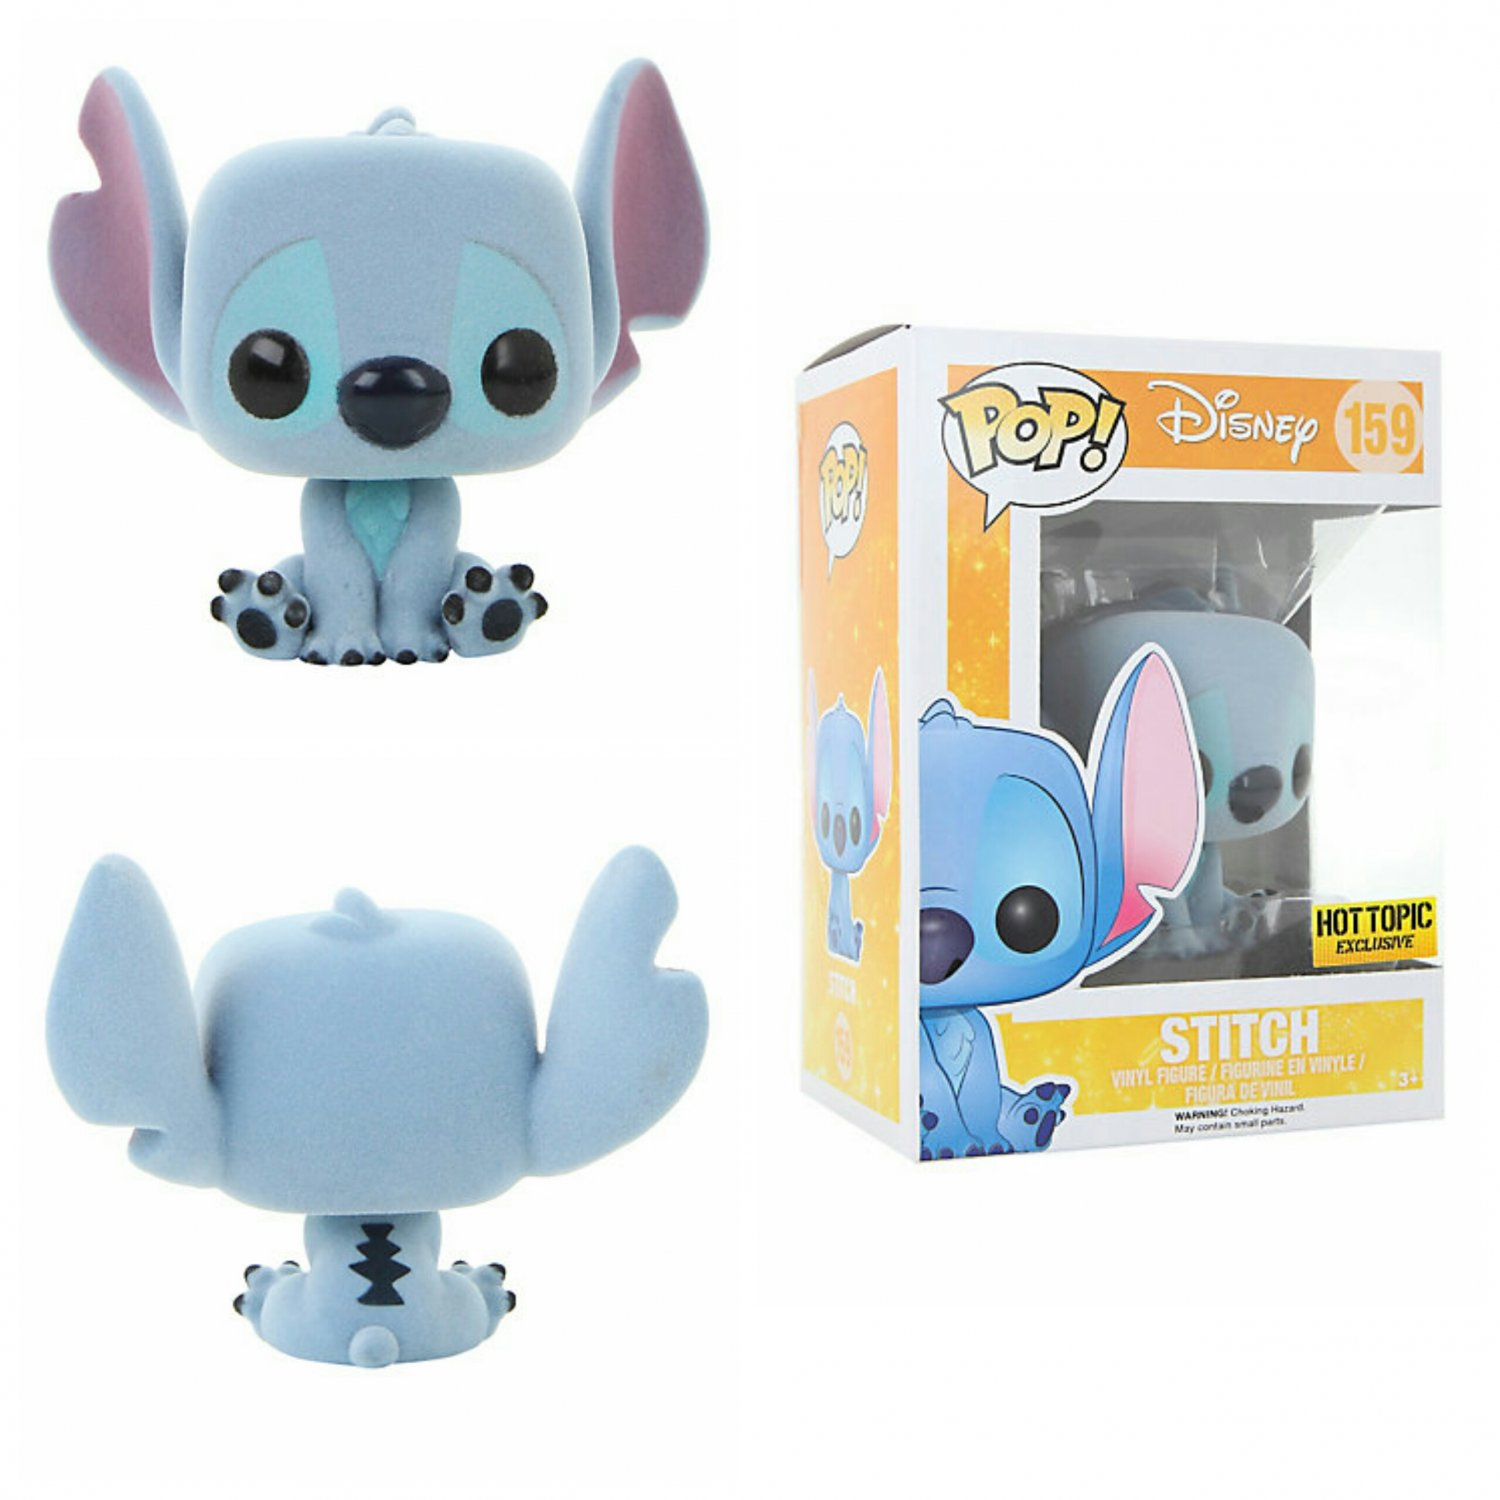 FUNKO Disney Lilo & Stitch POP! #159 Flocked Stitch Vinyl Figure Hot Topic Exclusive